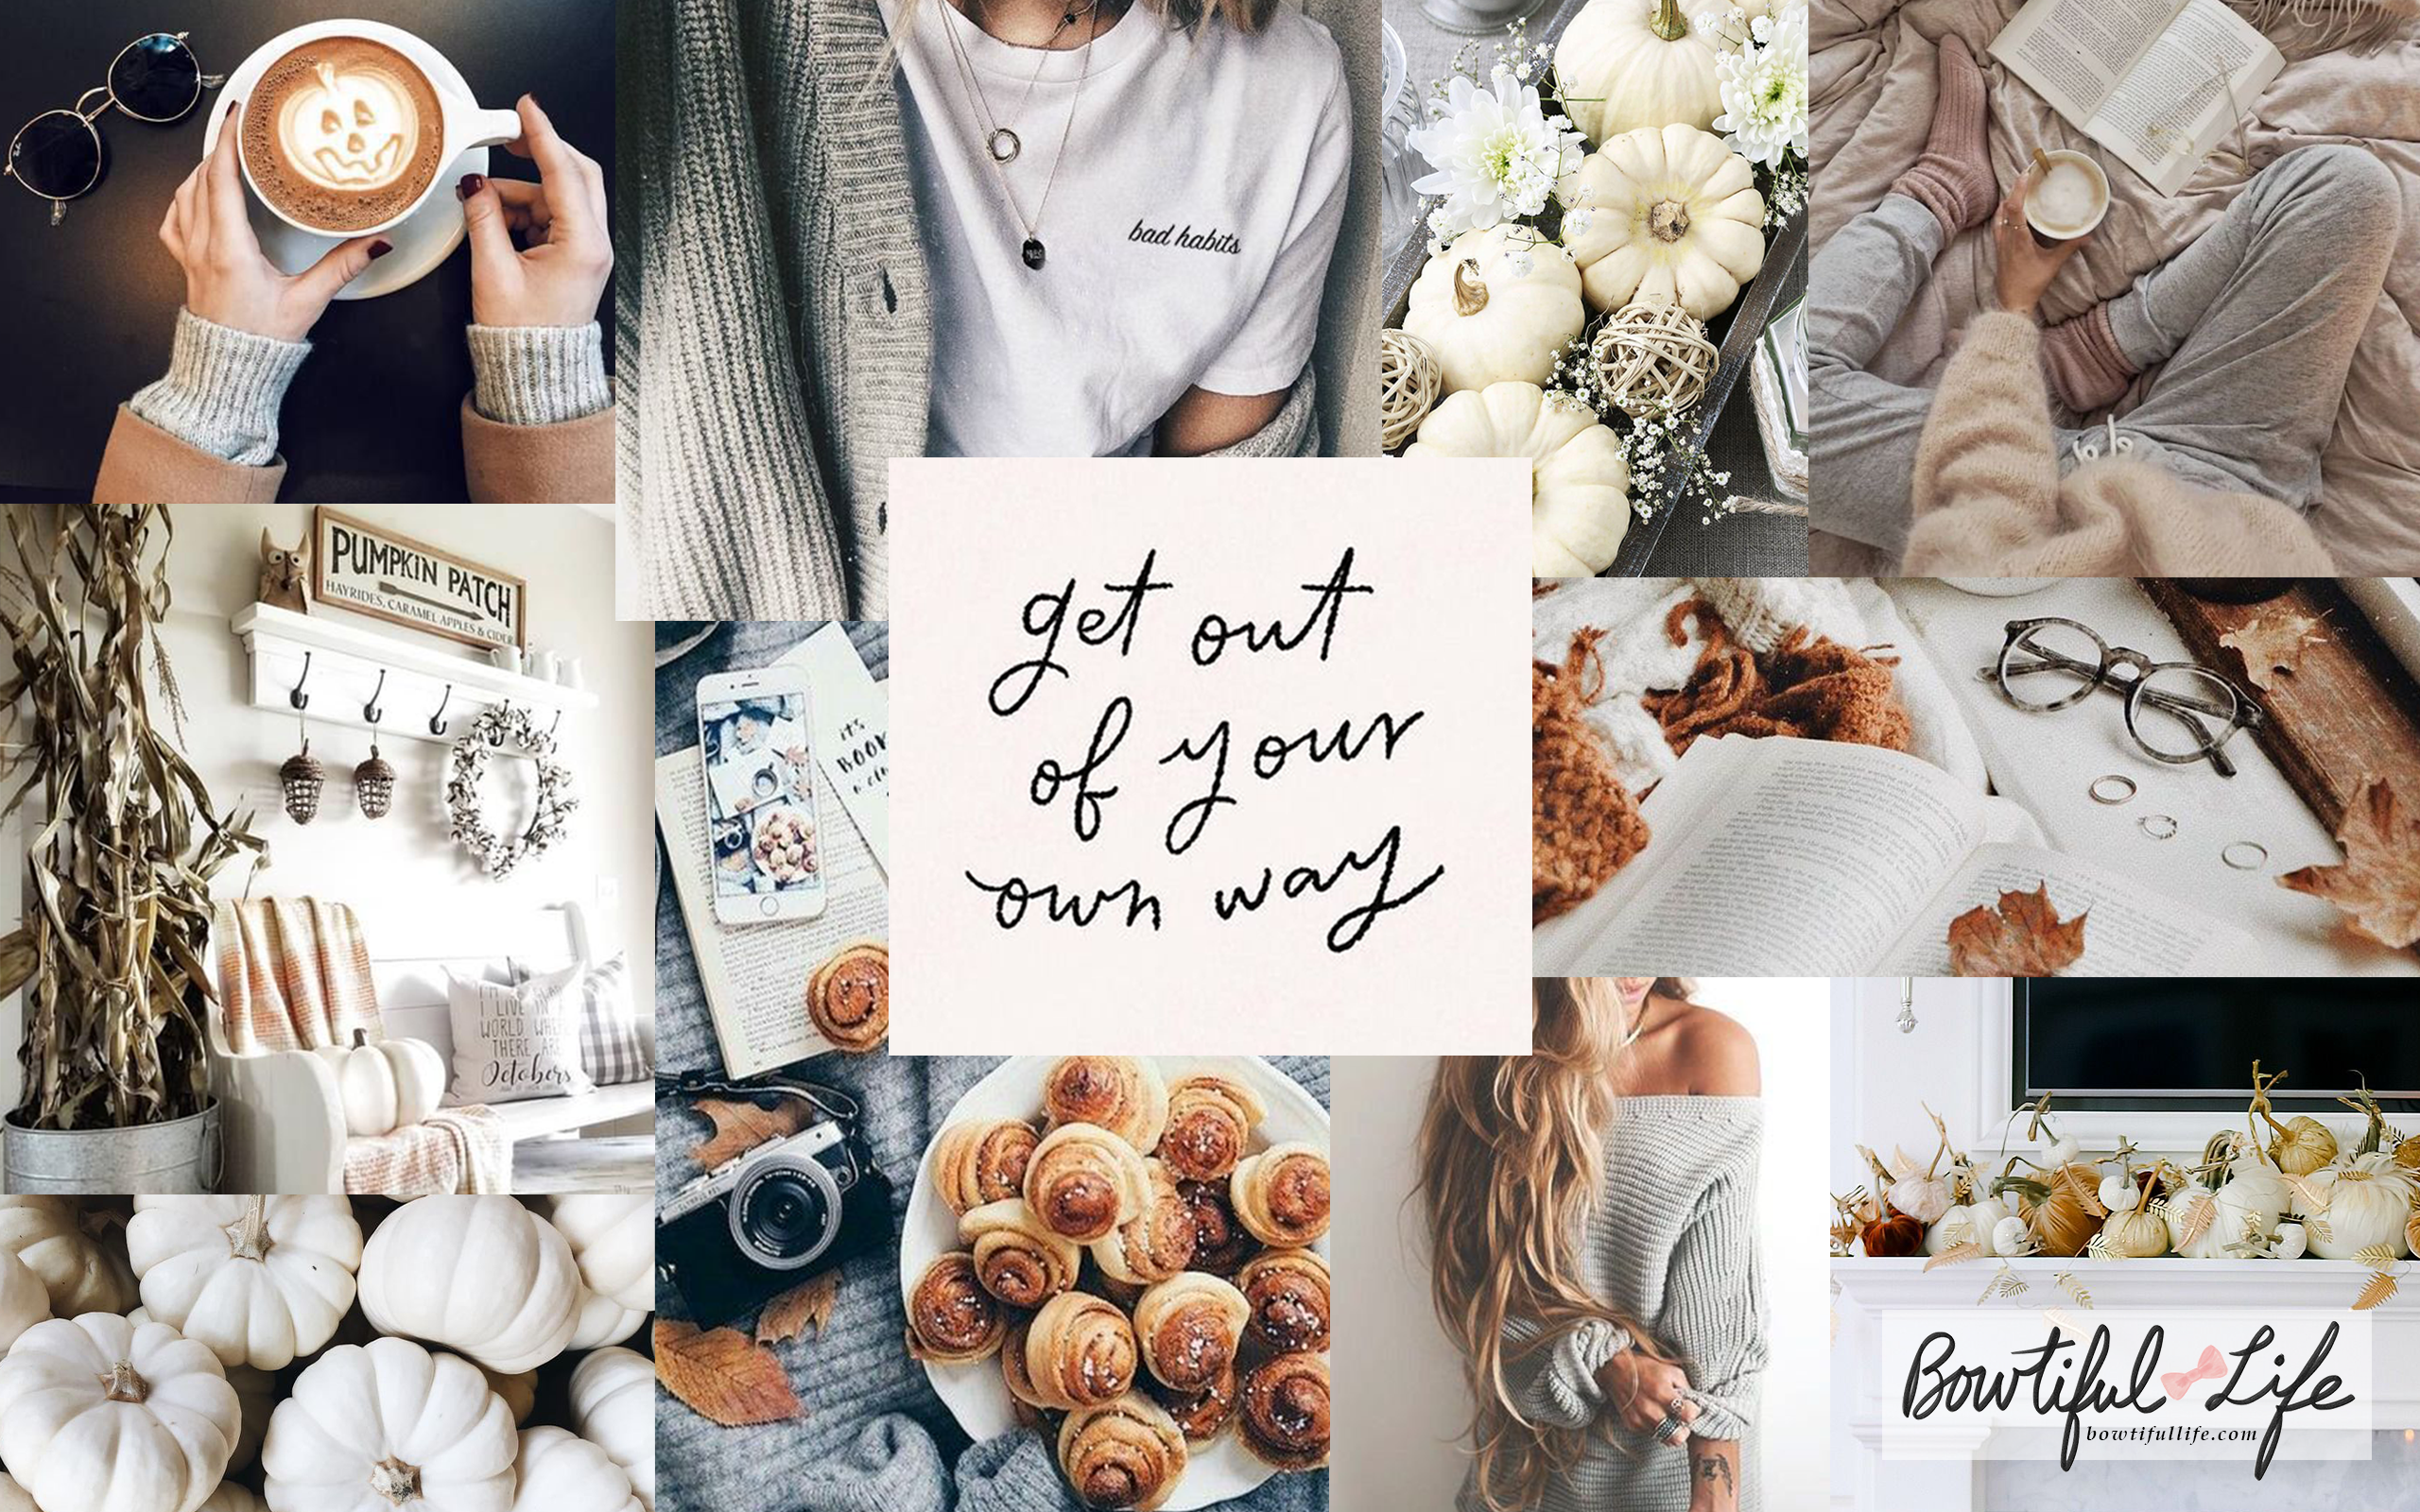 Get Out Of Your Own Way Bowtiful Wallpaper Bowtiful Life Macbook Wallpaper Cute Laptop Wallpaper Aesthetic Desktop Wallpaper